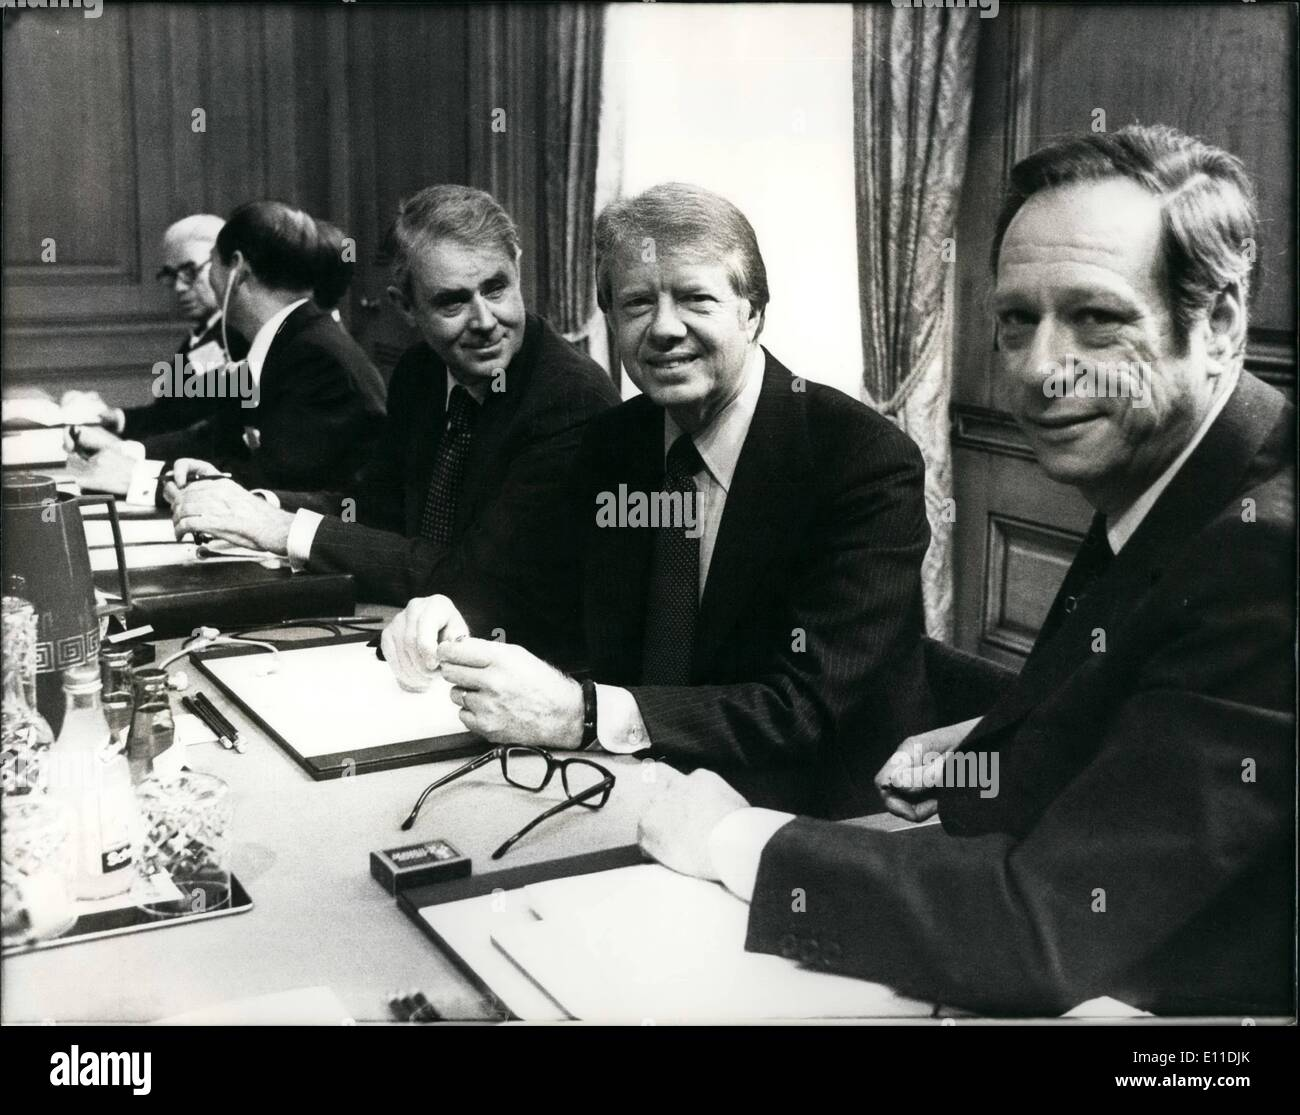 May 05, 1977 - Leader Seven of the most influential countries in the world arrived for the Lowing, Street ' Summit meeting today. Also at the meeting, hosted by British Premier James Callaghan, were the finance ministers from cash country.: Photo shows American President Jimmy Carter (centre) pictured with his secretary of State Cyrus R. Vance, left and Treasurer Michael Blumenthal (right) inside Downing Street for today's 'Summit' meeting. - Stock Image